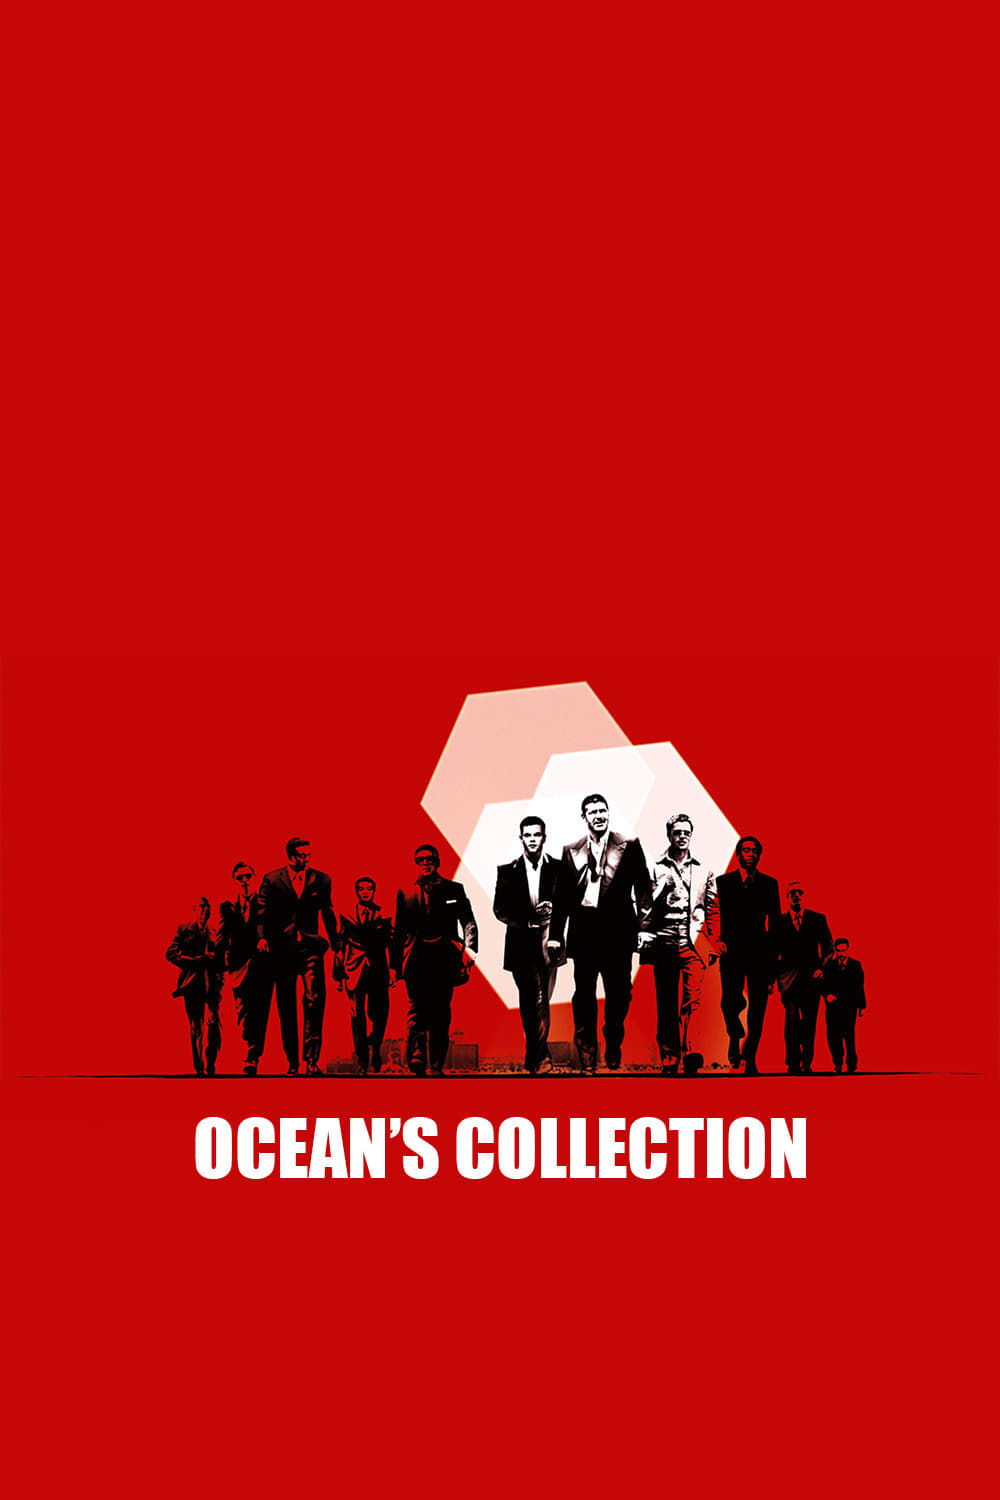 All Movies From Oceans Collection Saga Are On Moviesfilm